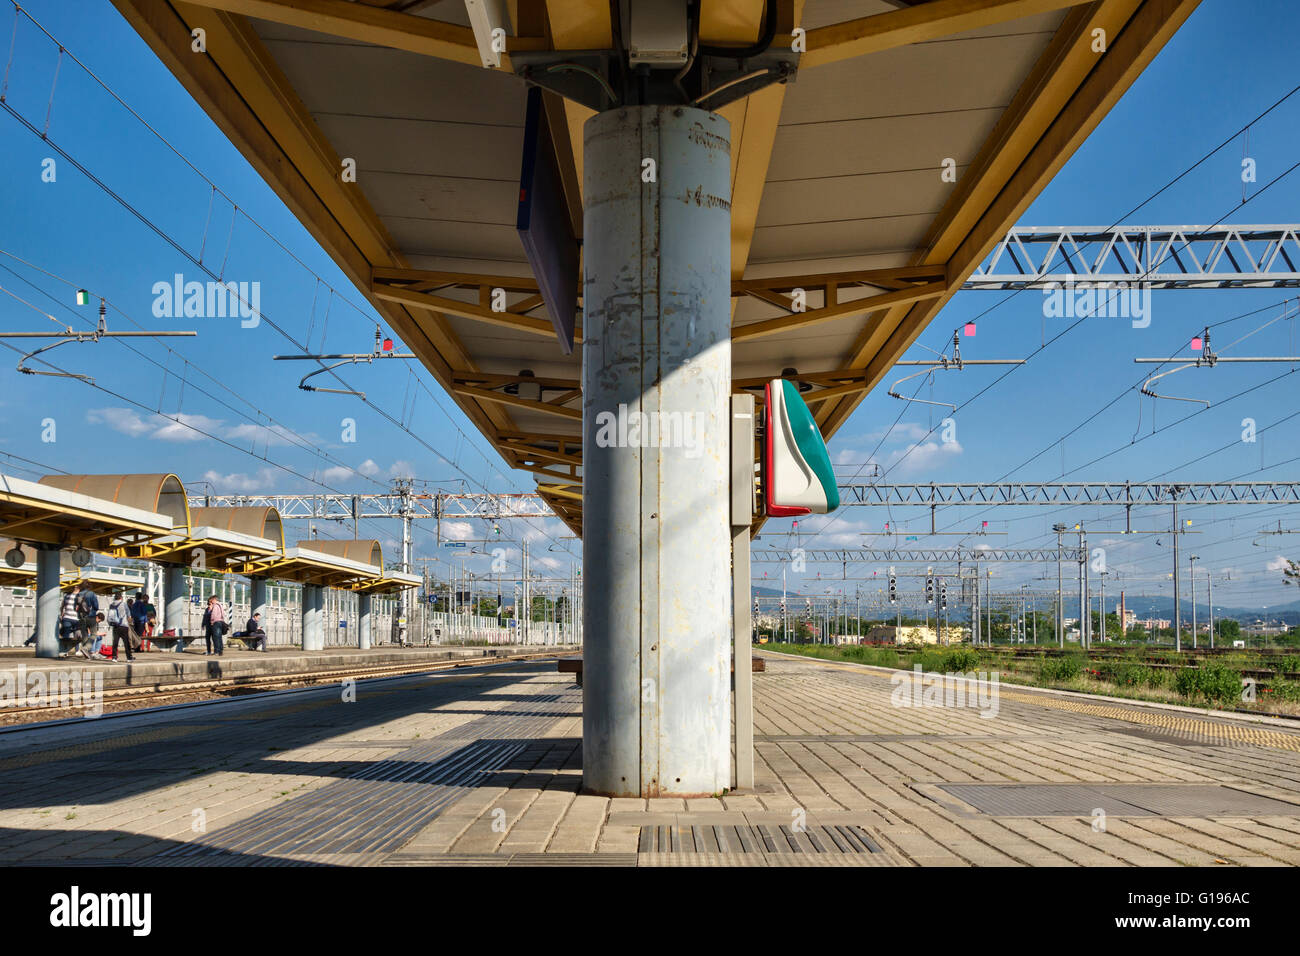 Near Florence, Italy. Firenze Castello railway station on the outskirts of the city. - Stock Image